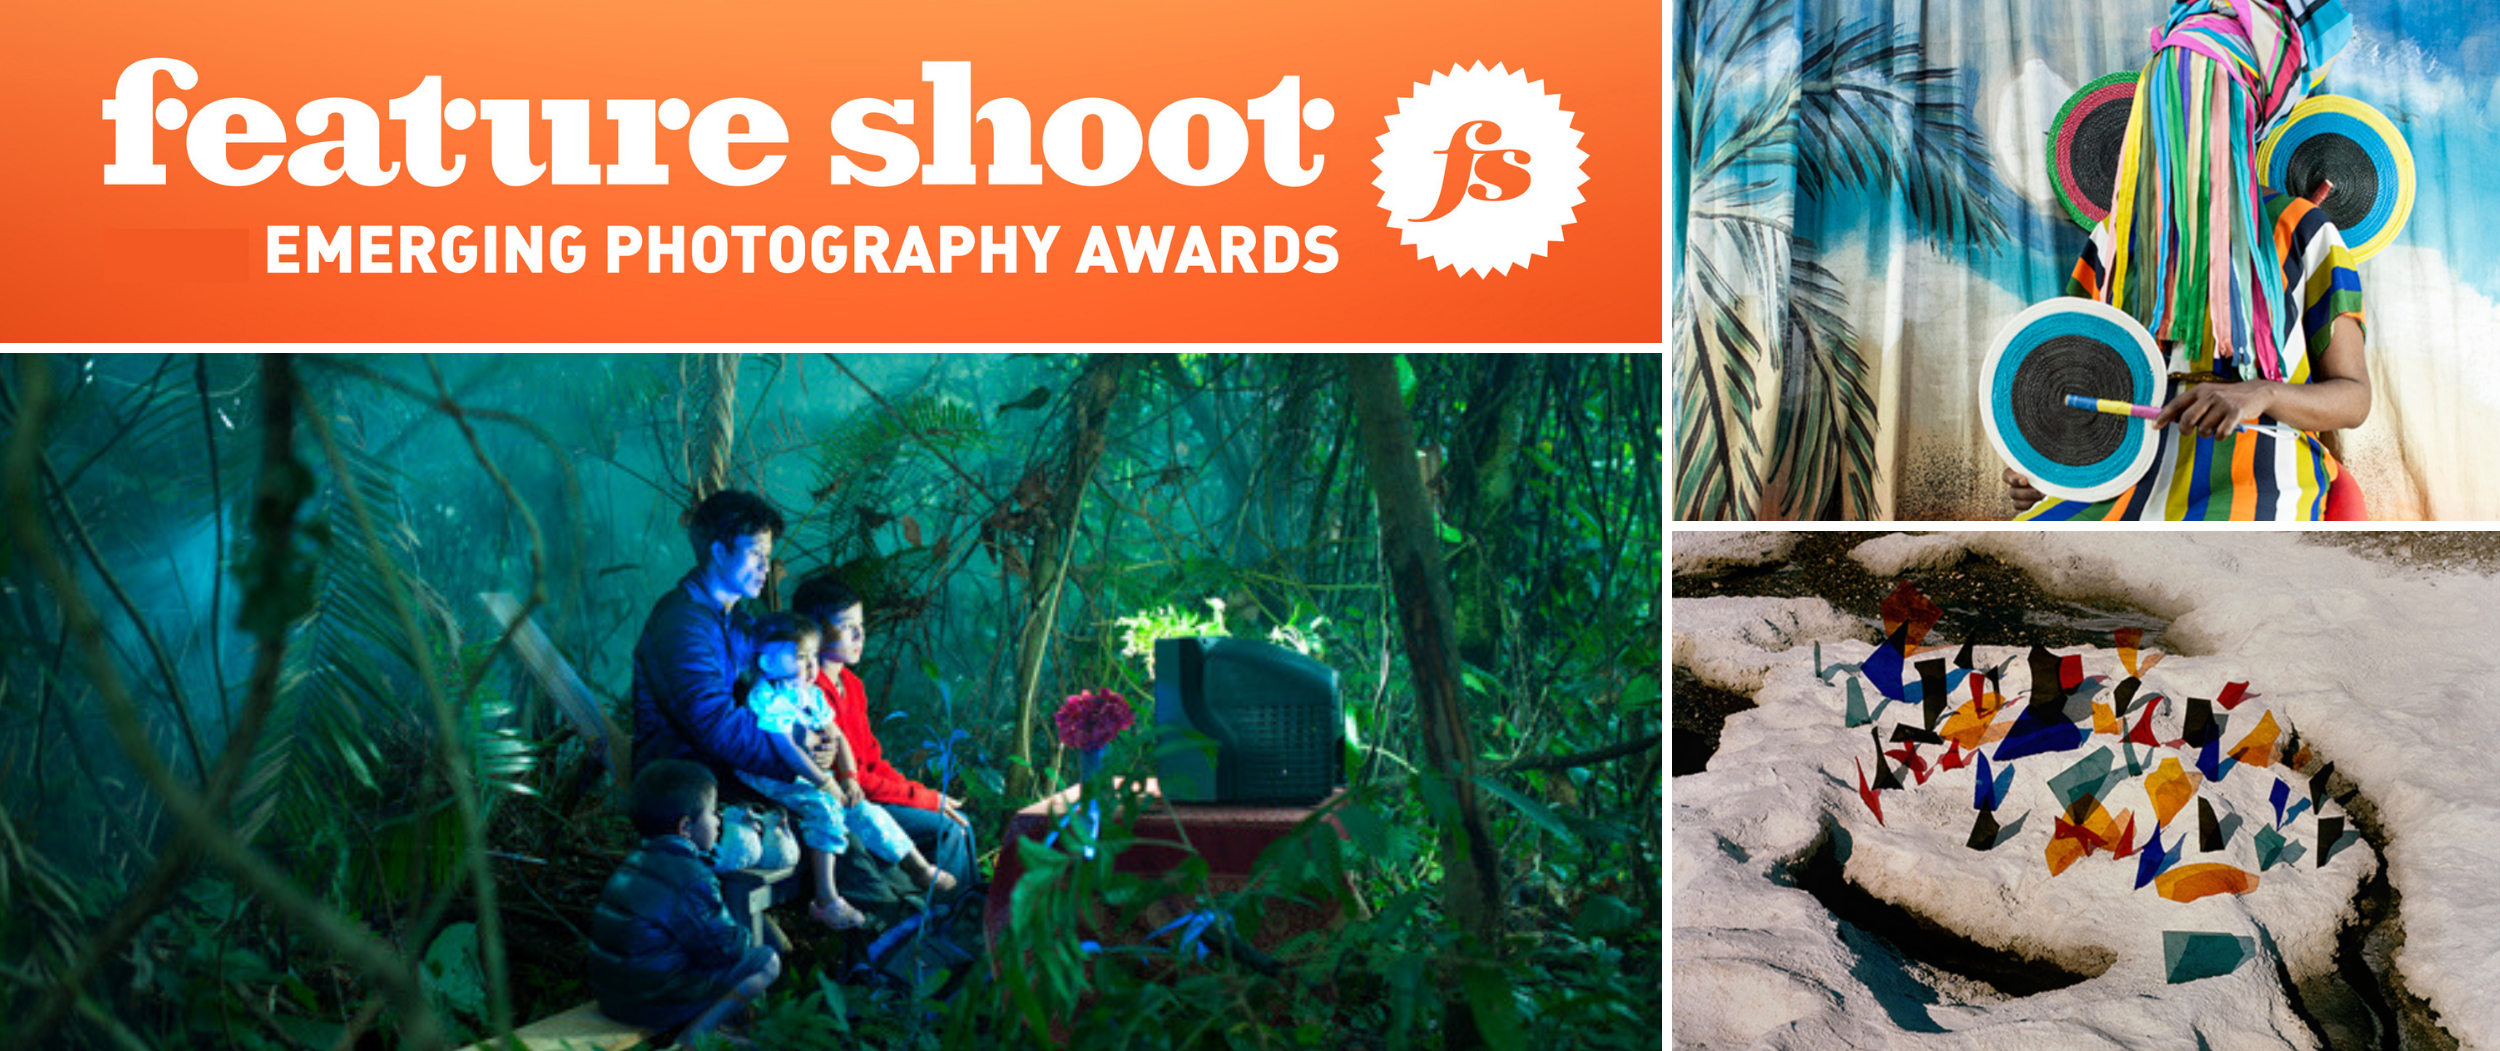 Feature Shoot Emerging Photography Awards